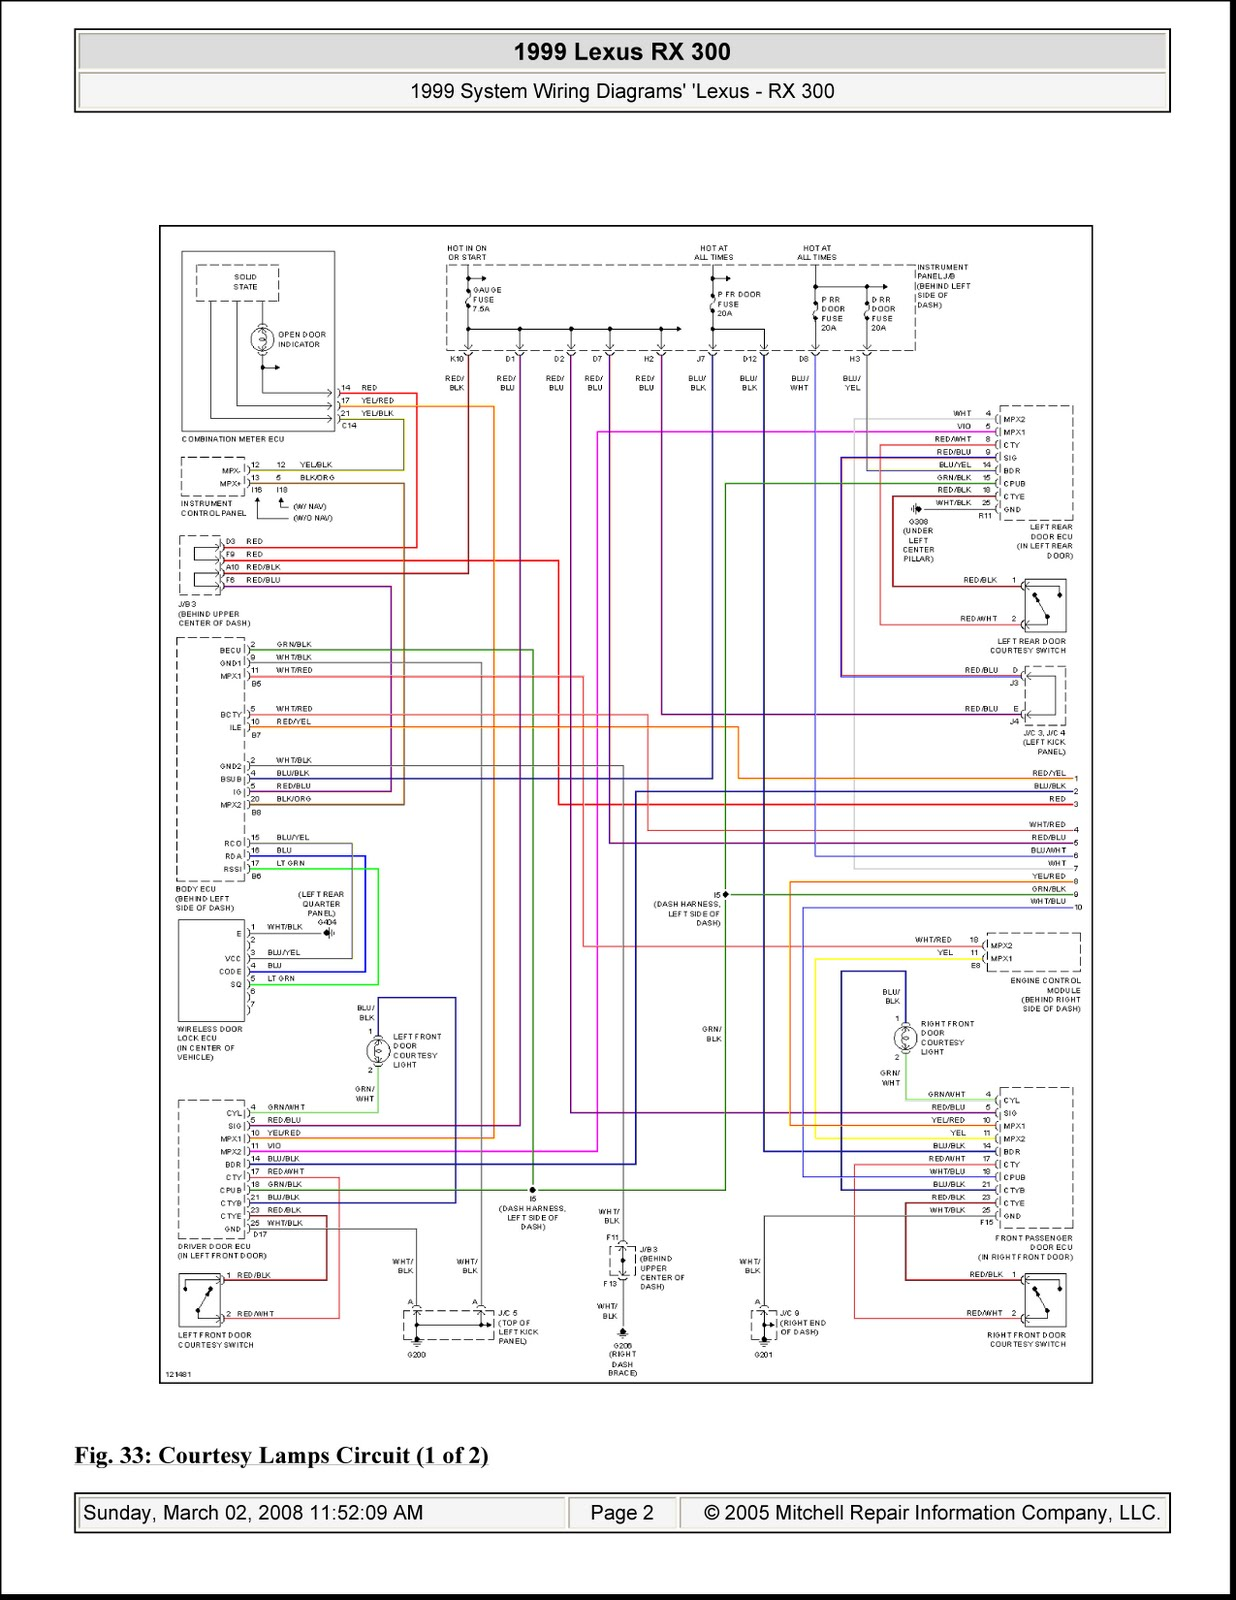 2001 Lincoln Ls Radio Wiring Diagram Manual Of Images Gallery Lexus Is300 Engine Free Image